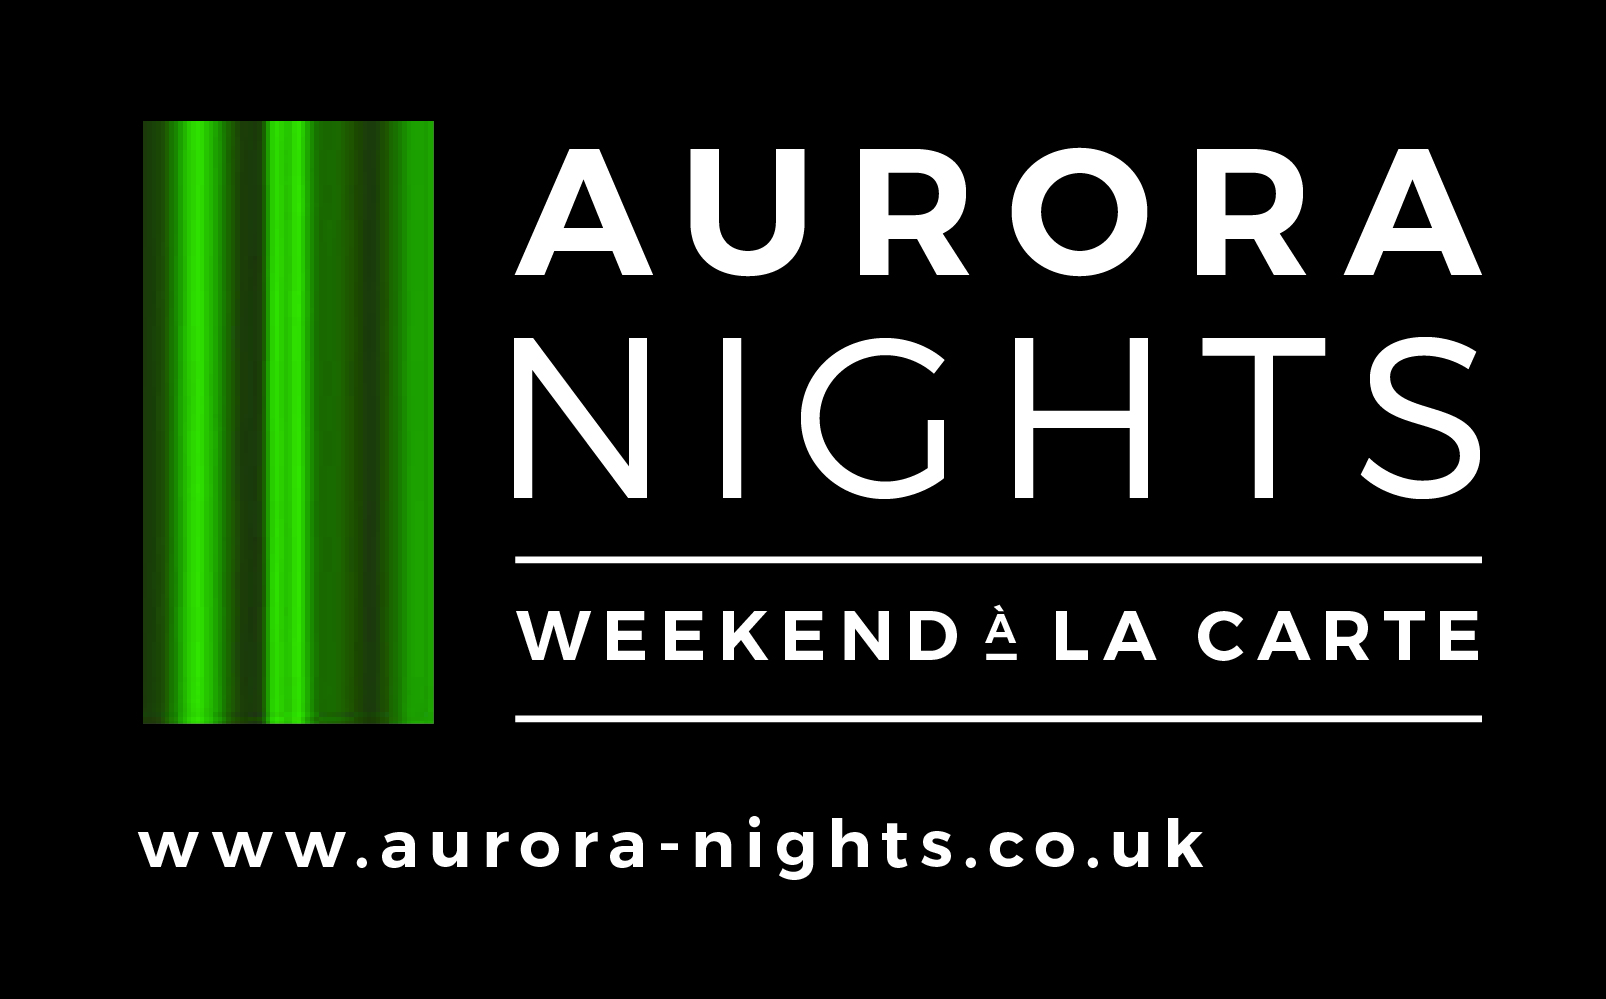 Read Weekend a la carte Aurora Nights Reviews